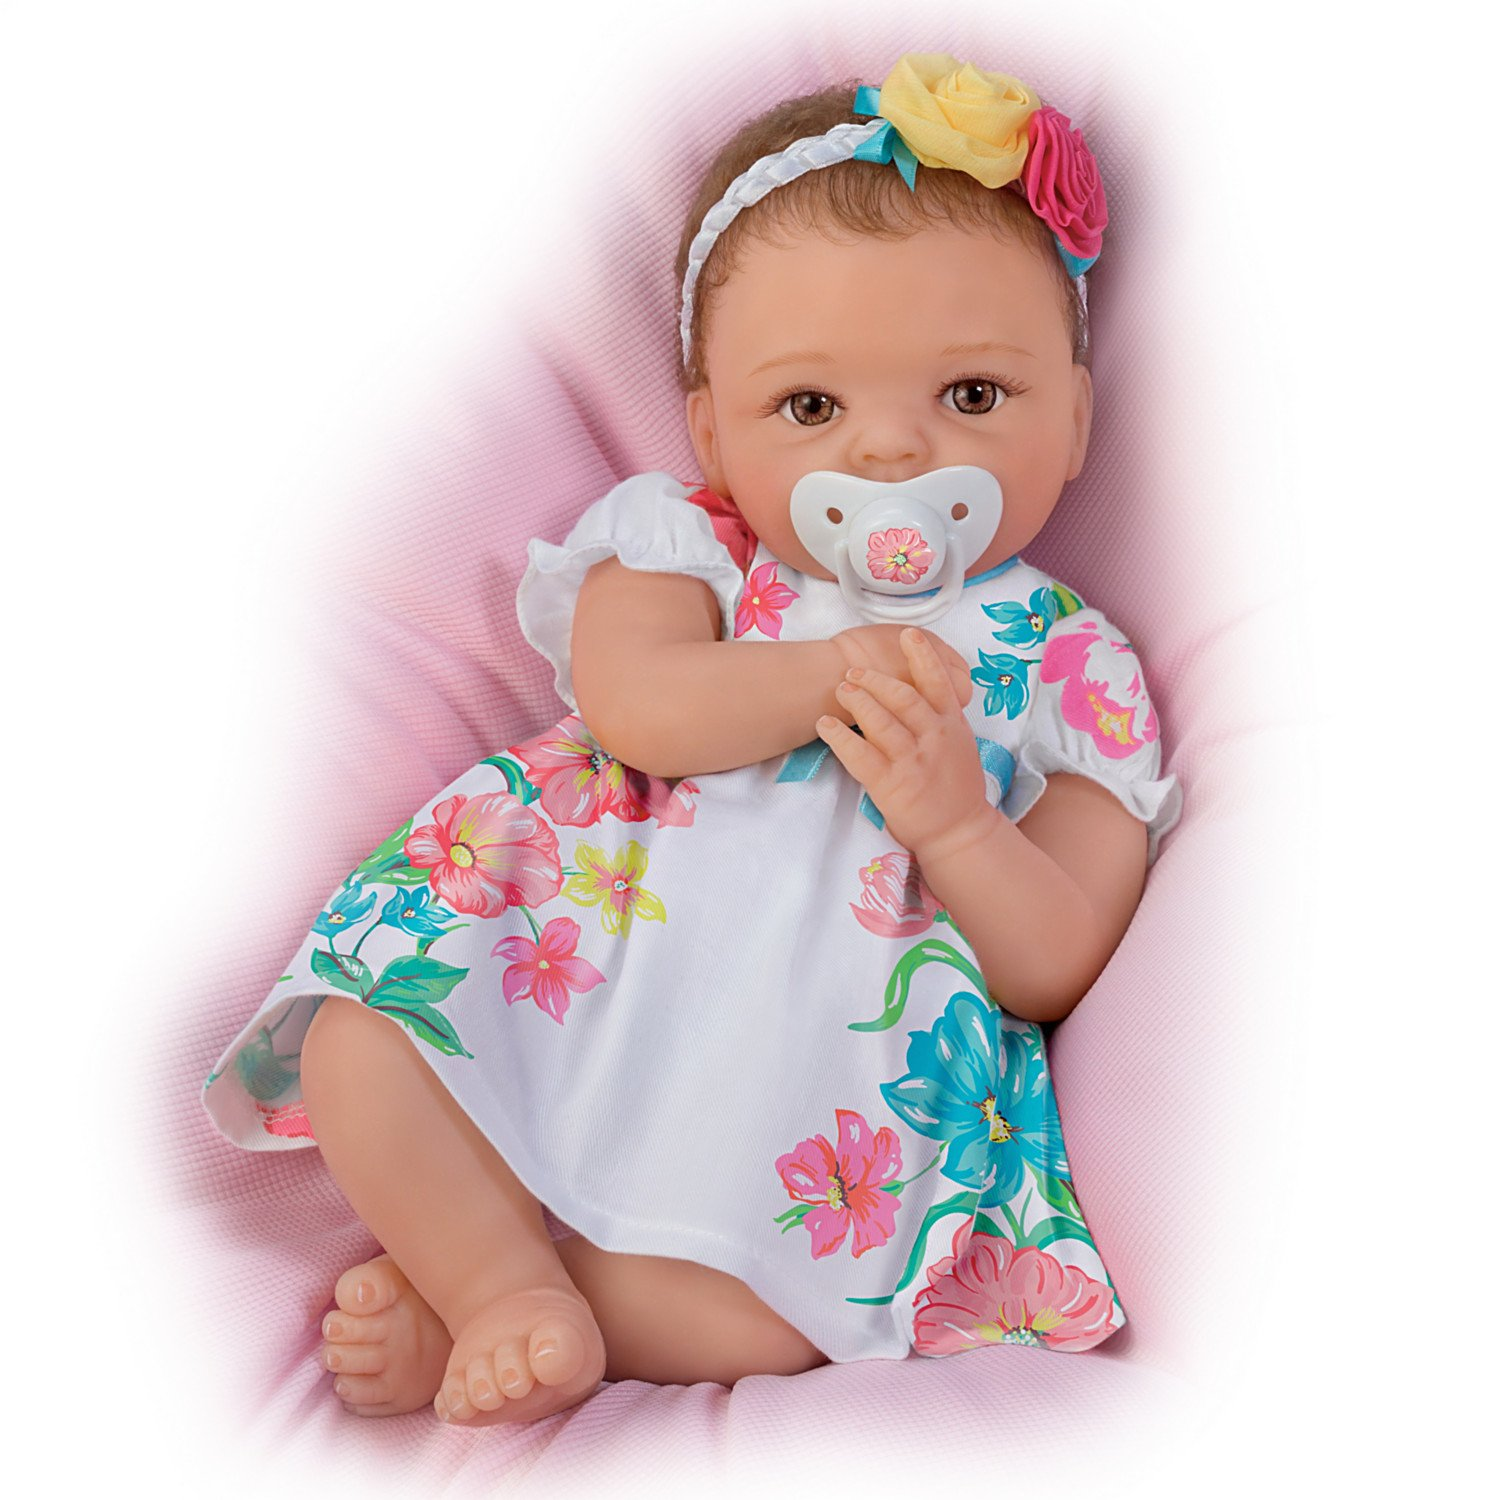 Cheryl Hill Pretty and Petite Presley TrueTouch Silicone Lifelike Baby Doll by The Ashton-Drake Galleries